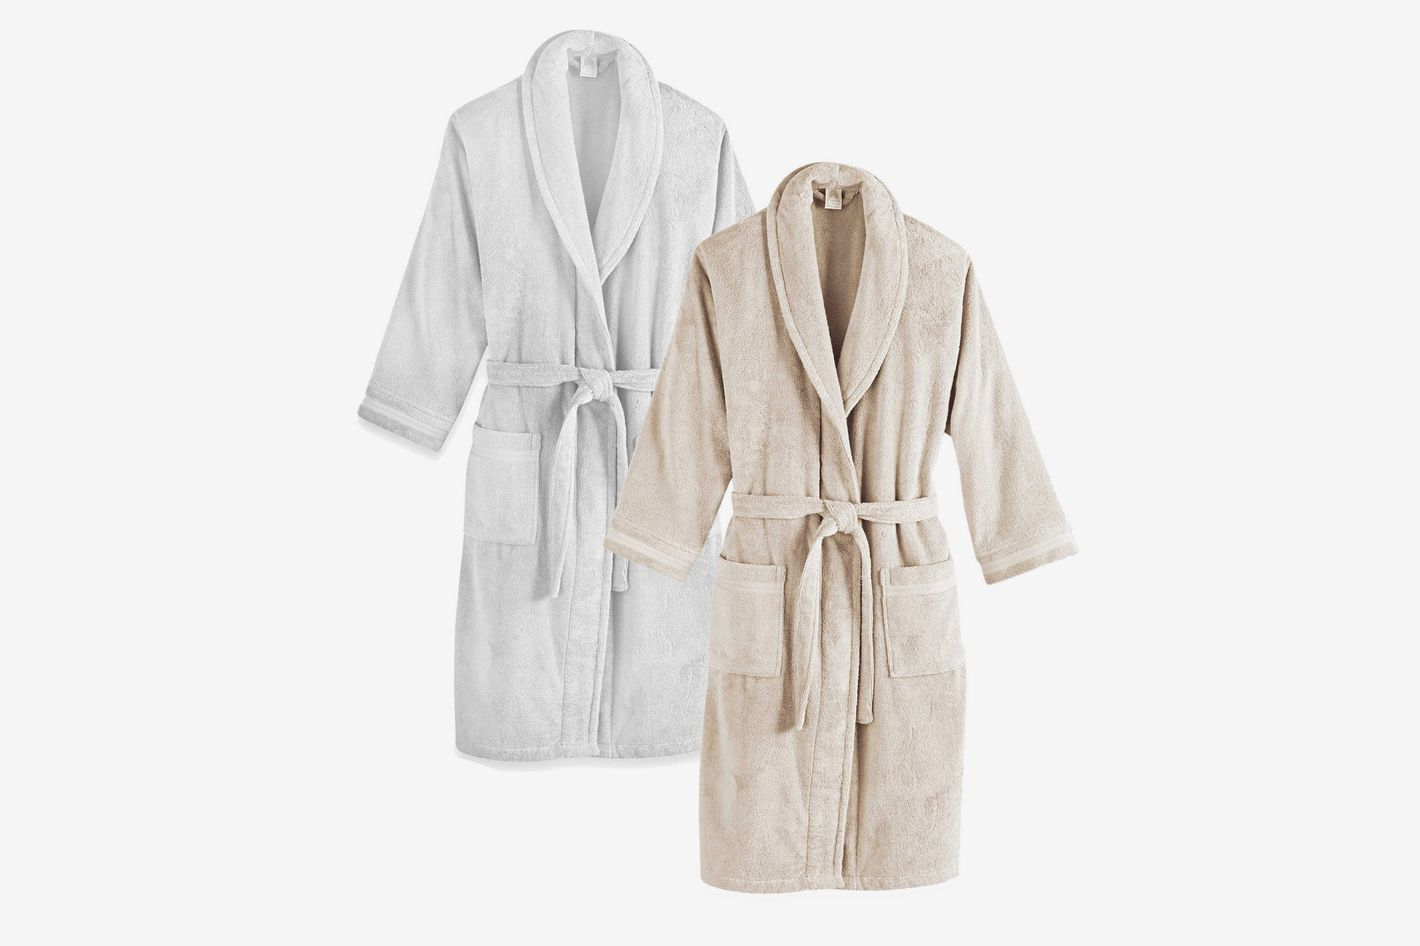 12 Best Bathrobes for Women 2018 4129a9b535ff